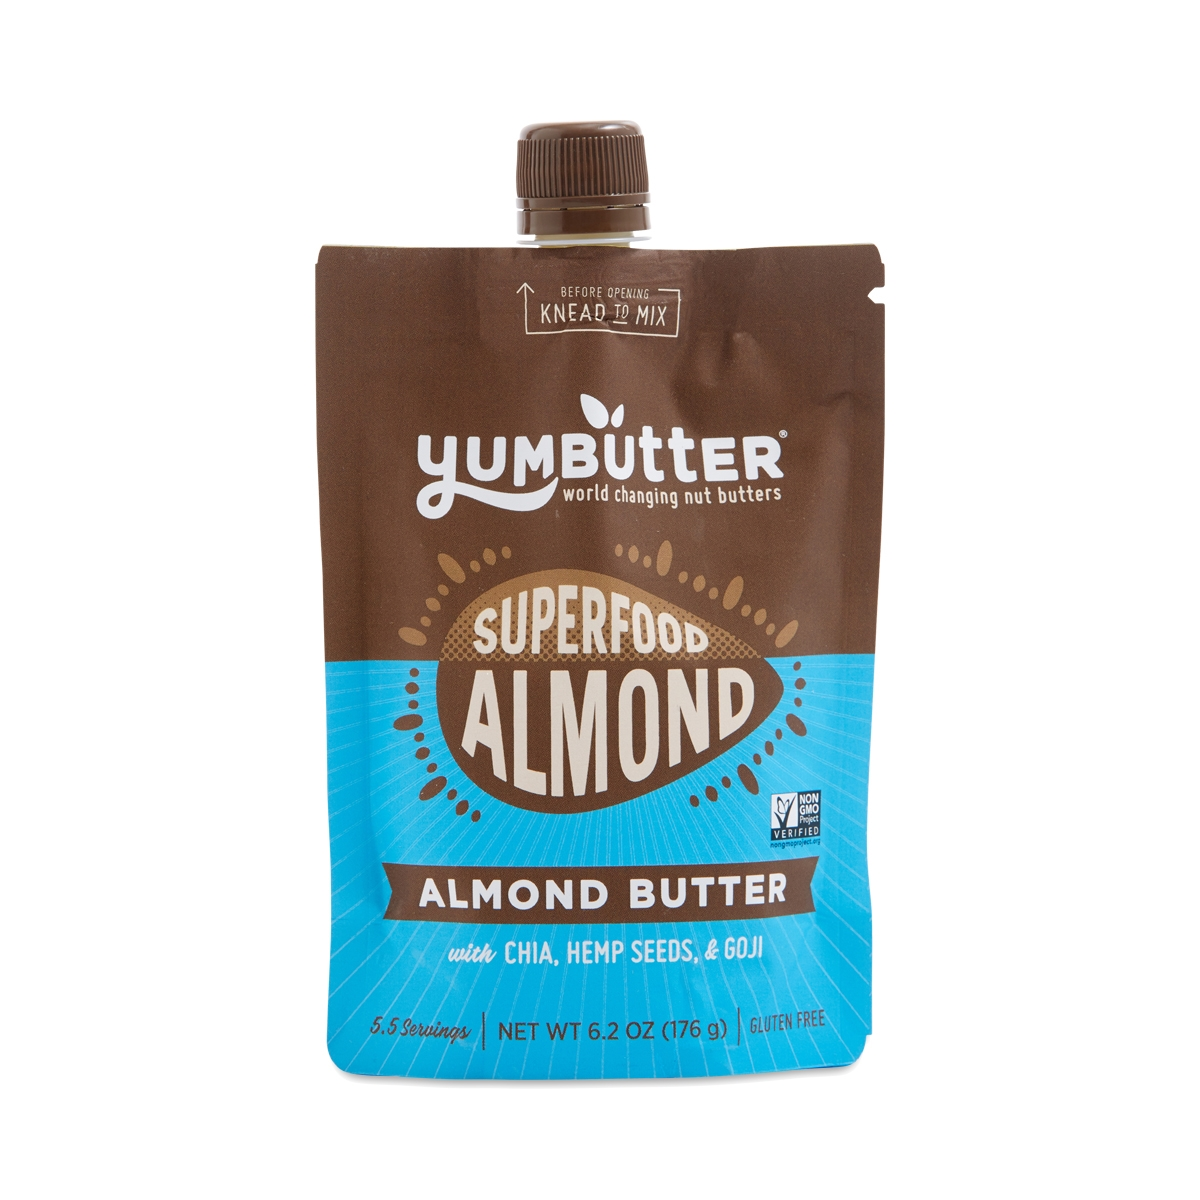 Yumbutter Superfood Almond Butter 6.2 oz pouch